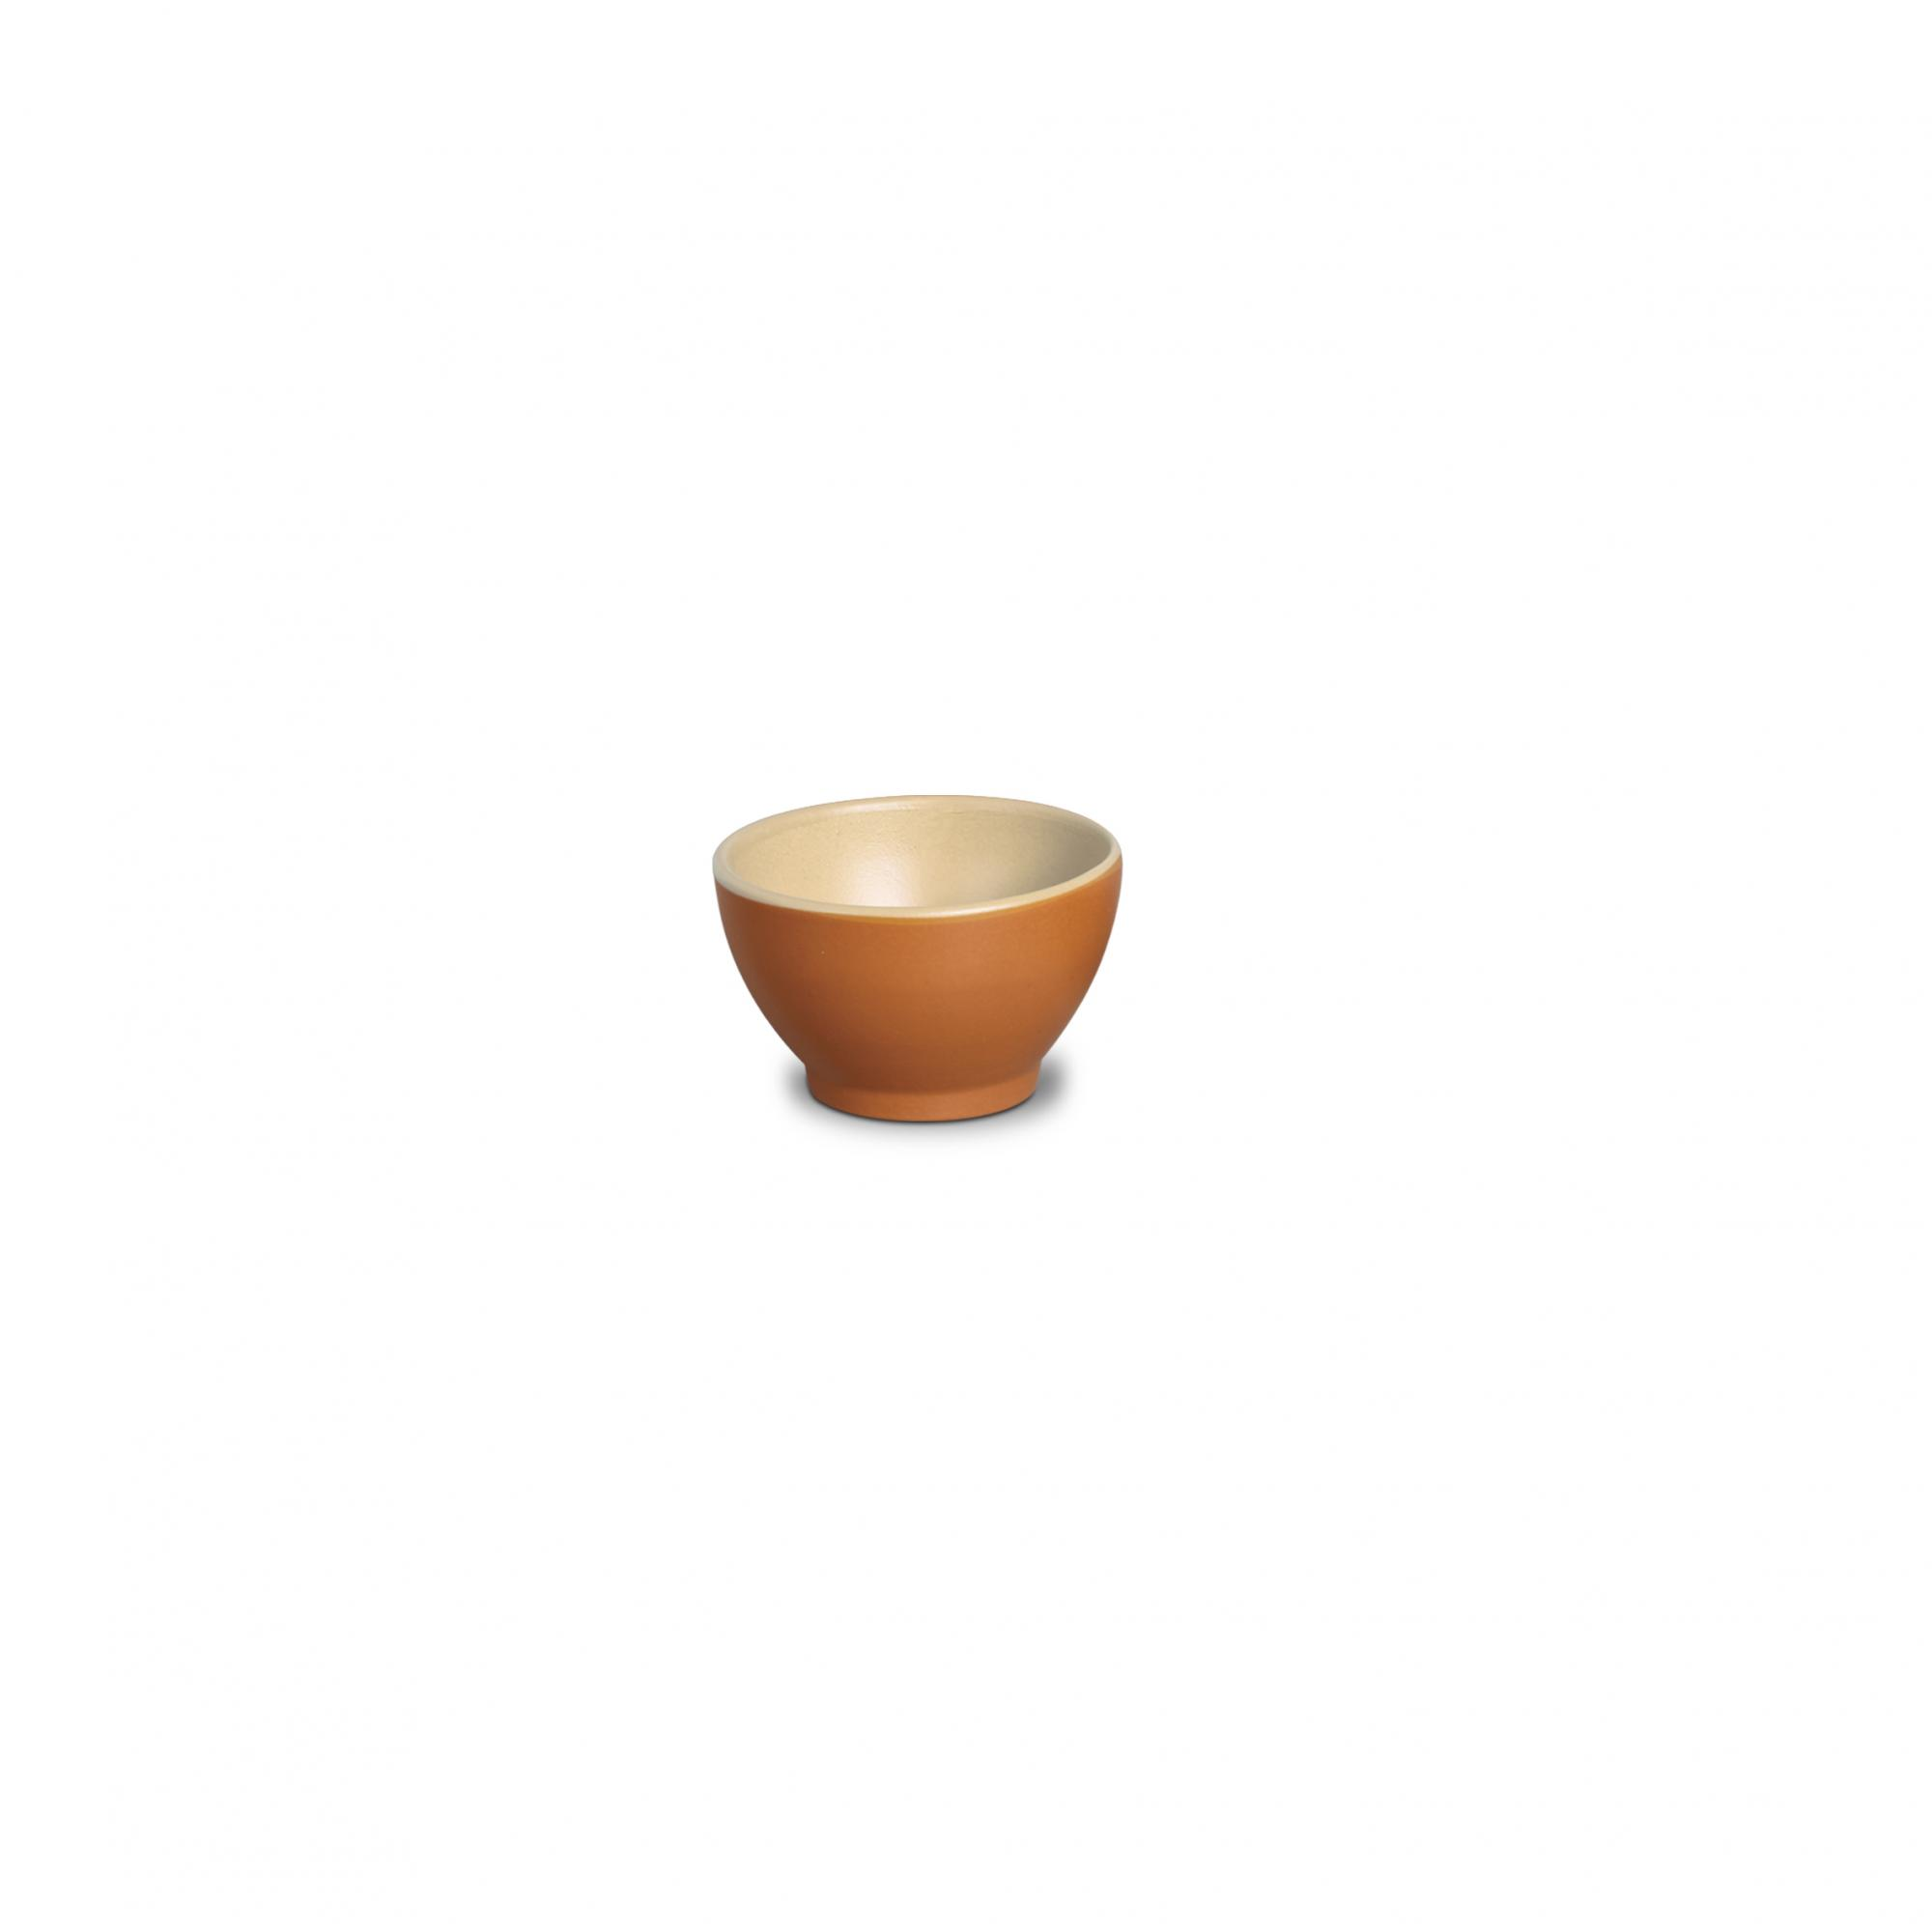 CONSOME BOWL 550 ML - TIJOLO/CREME MATE